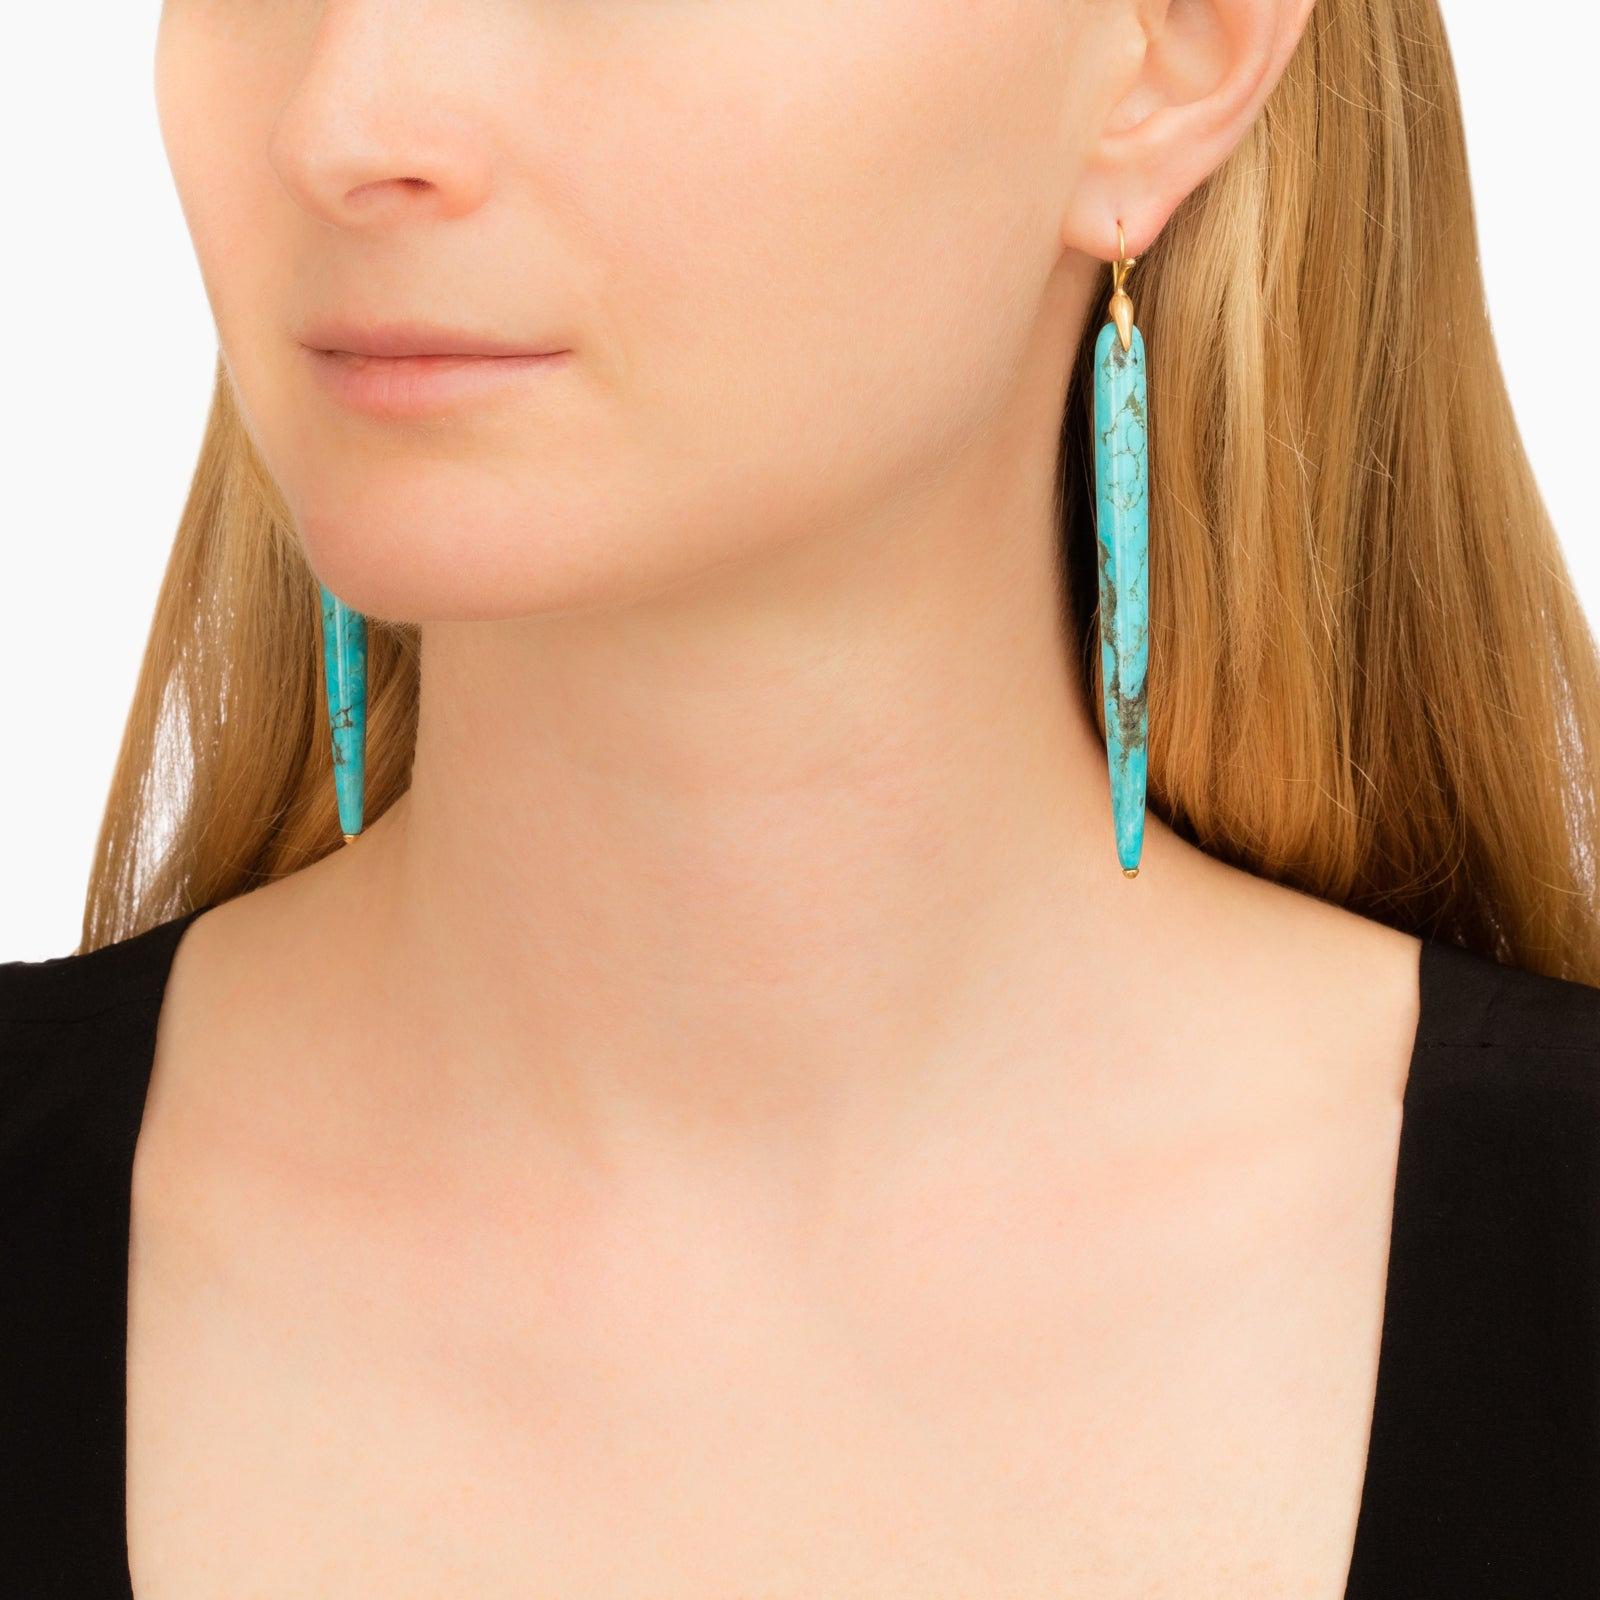 Sleeping Beauty Turquoise Long Simple Bird Earrings - Annette Ferdinansen - Earrings | Broken English Jewelry